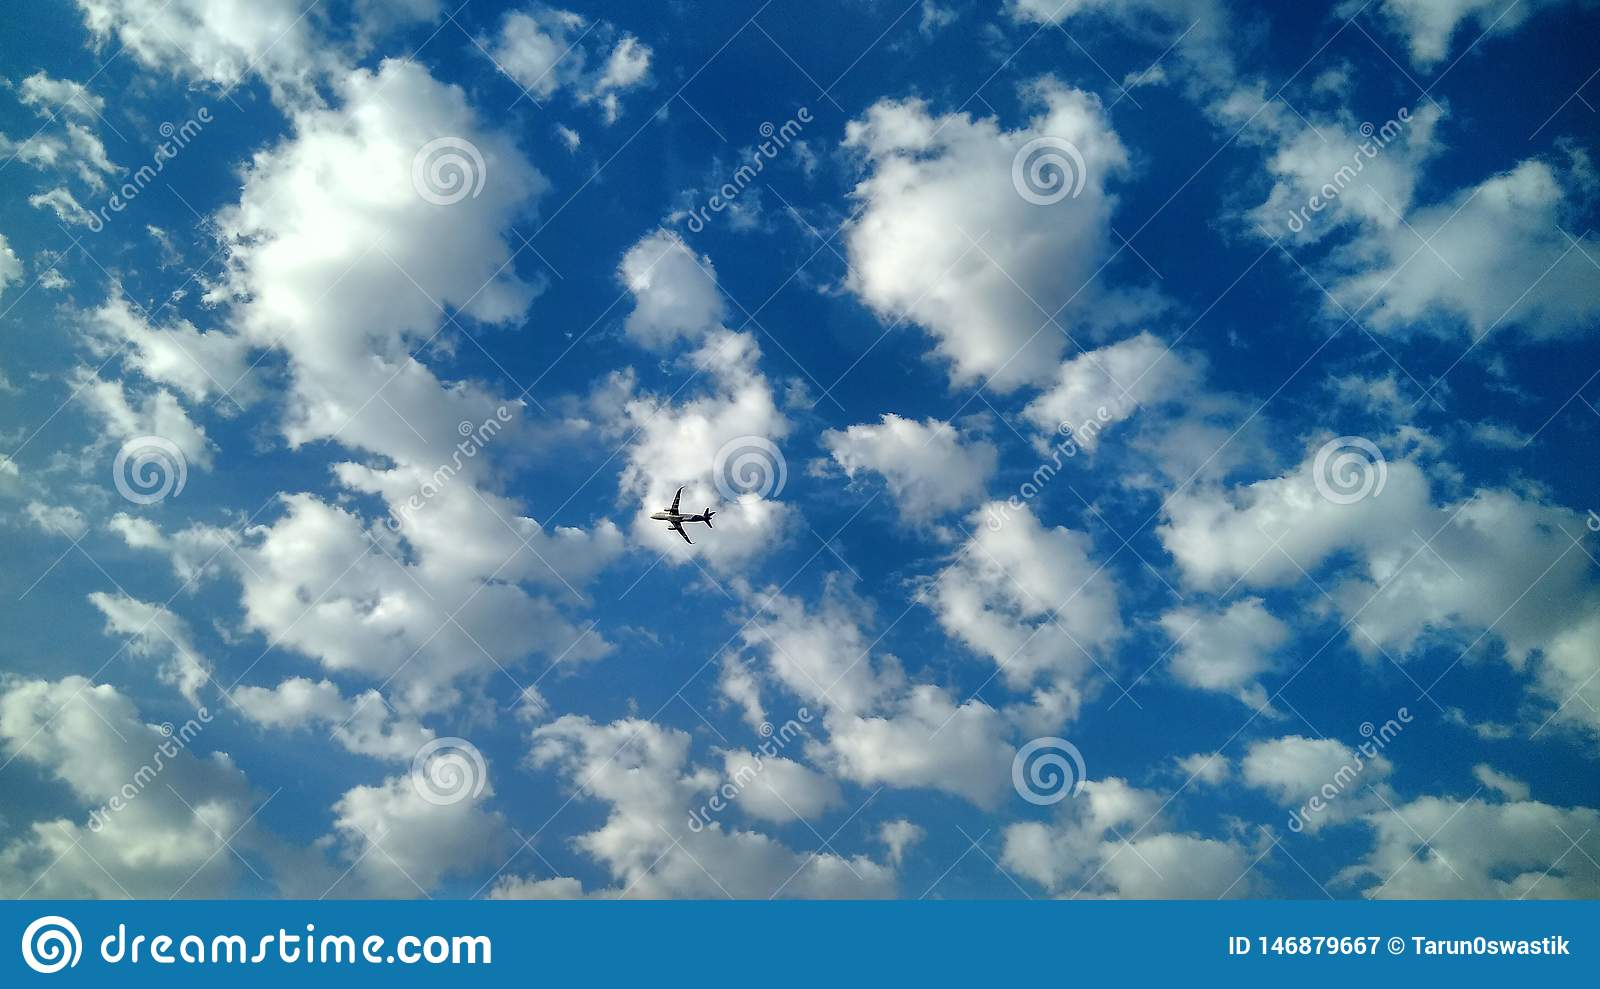 Clouds with Aeroplane beautifull sky view